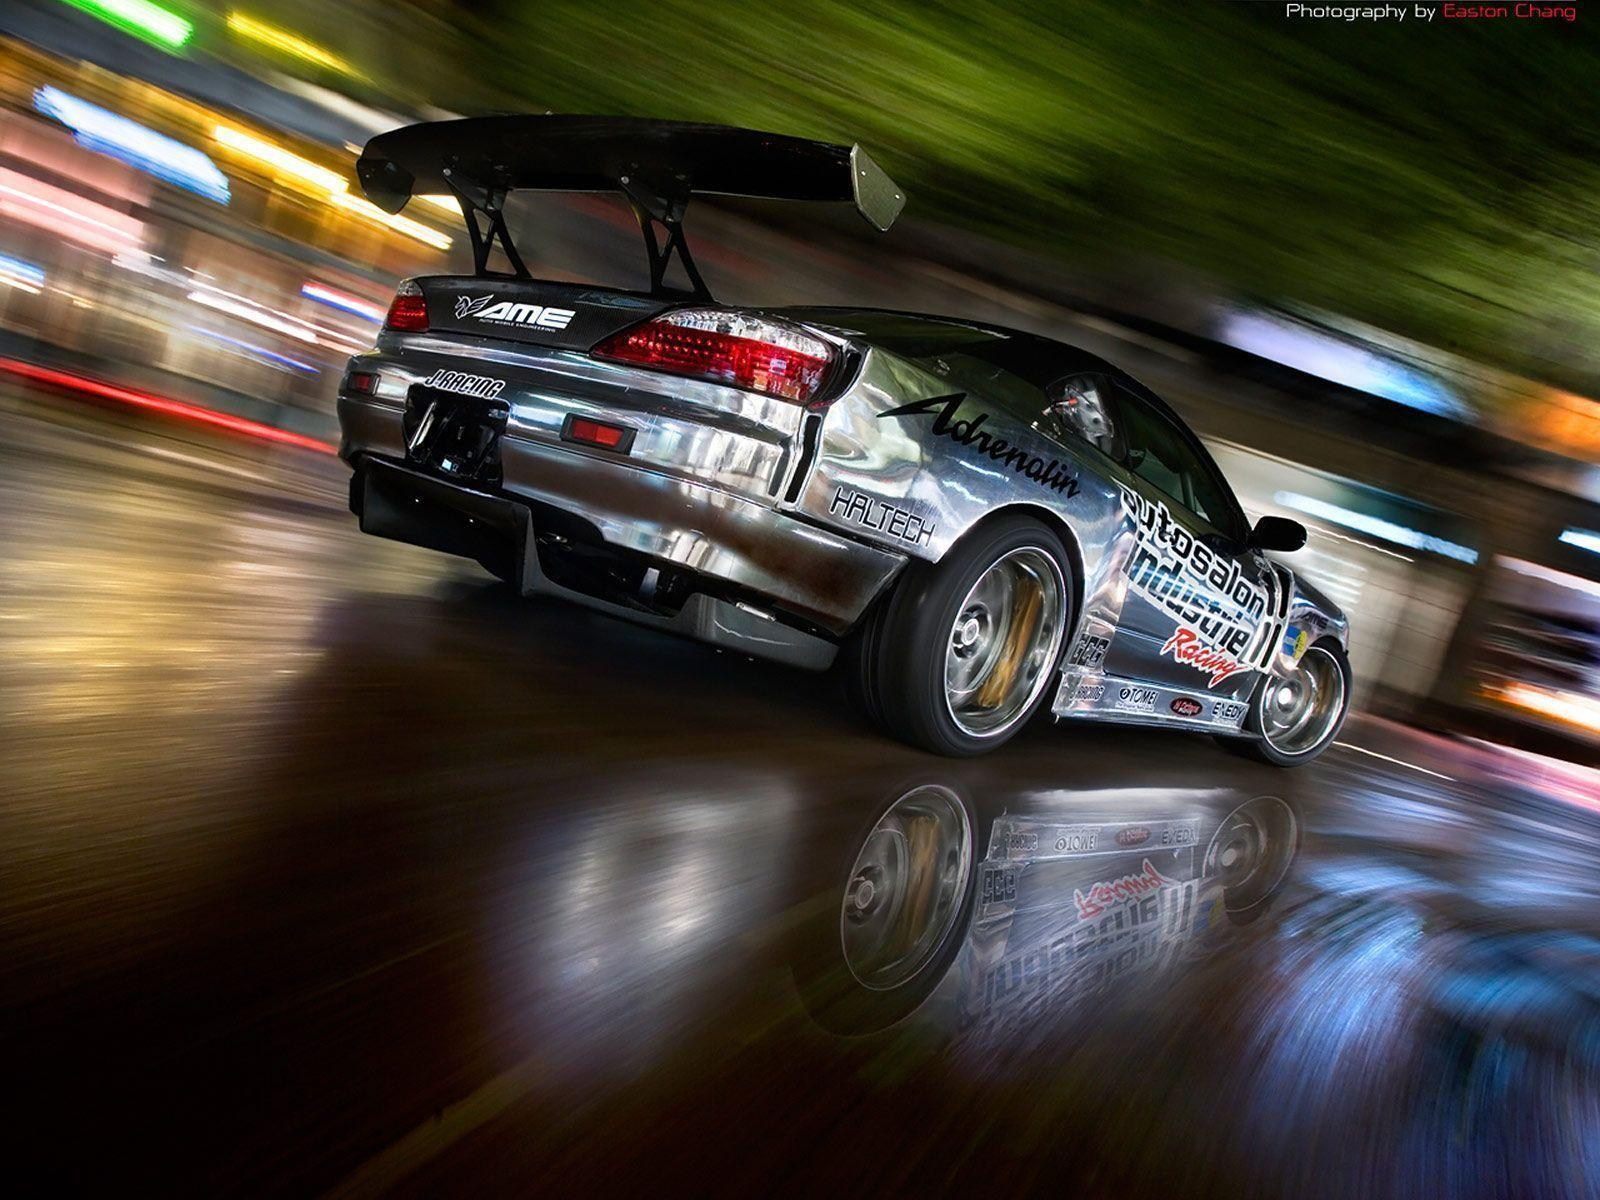 Drifting Cars Wallpapers - Wallpaper Cave